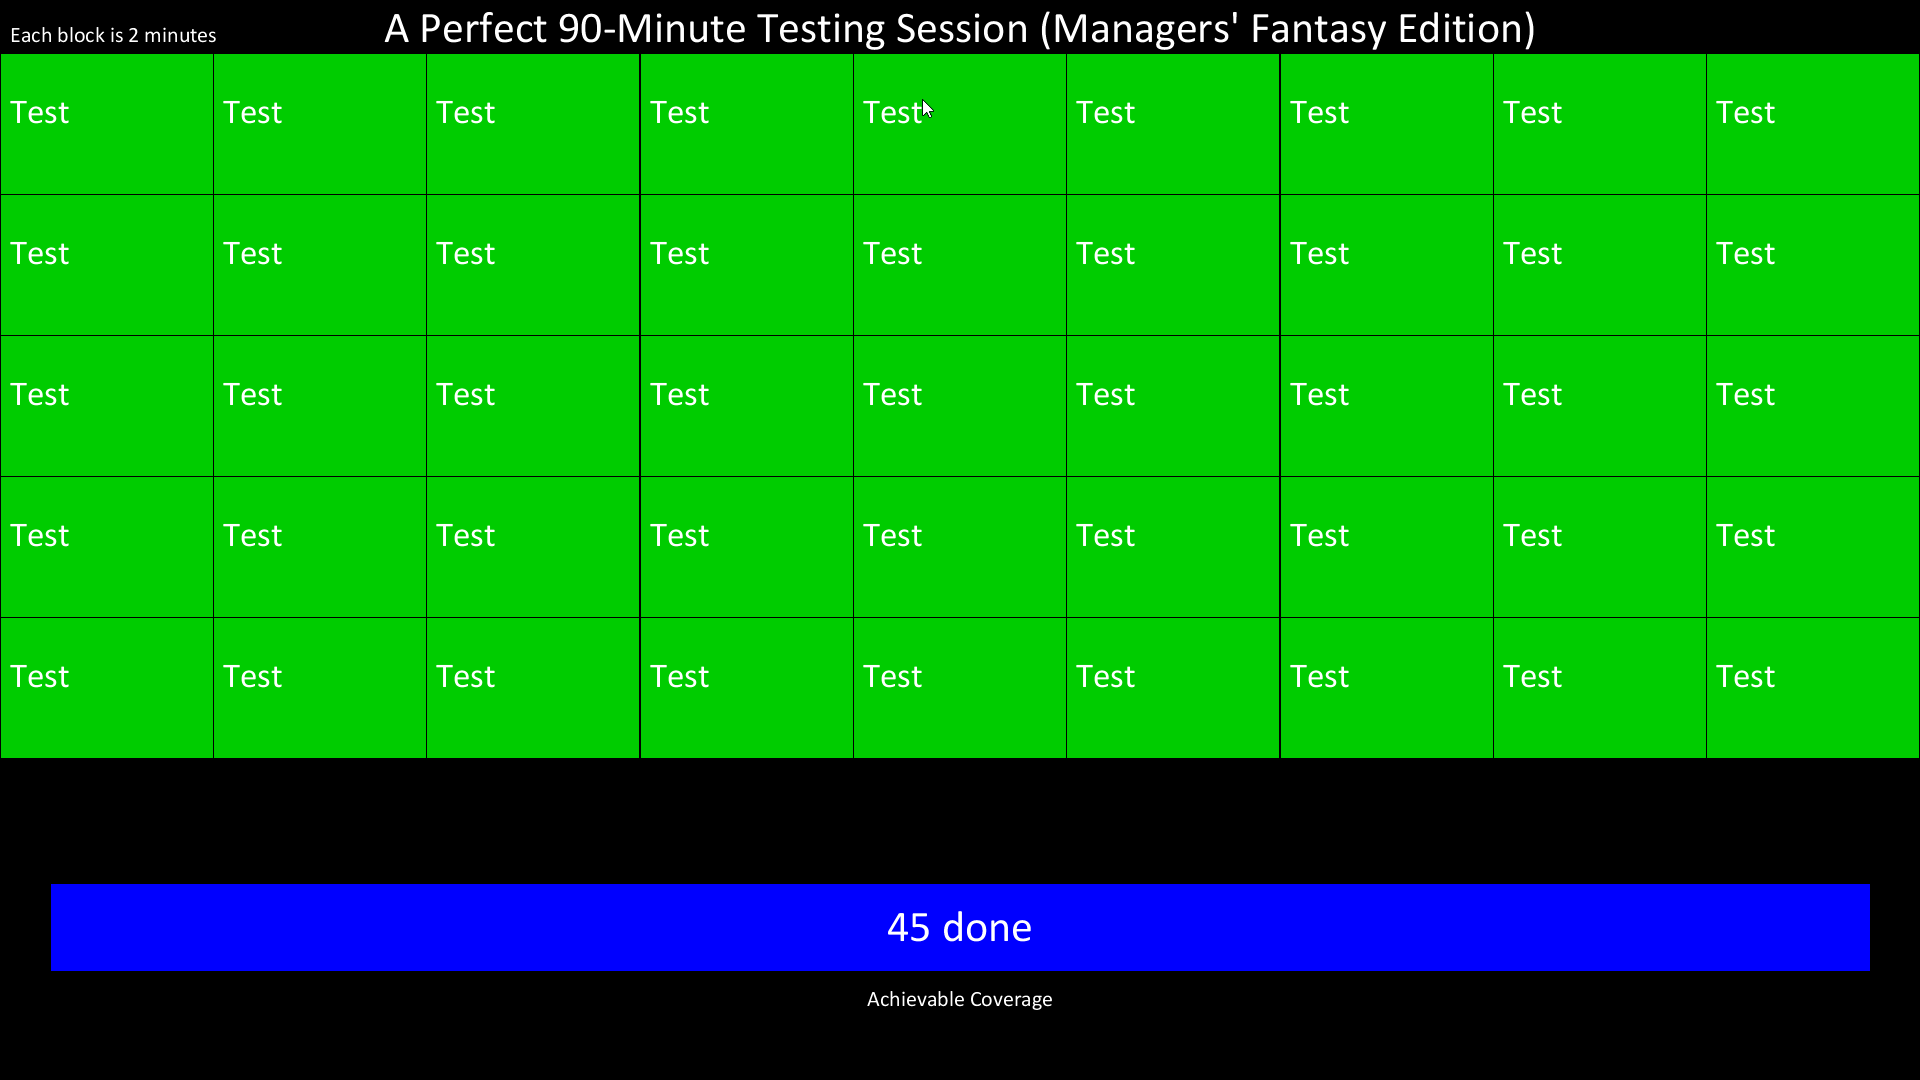 A Manager's Fantasy of an Ideal Test Session